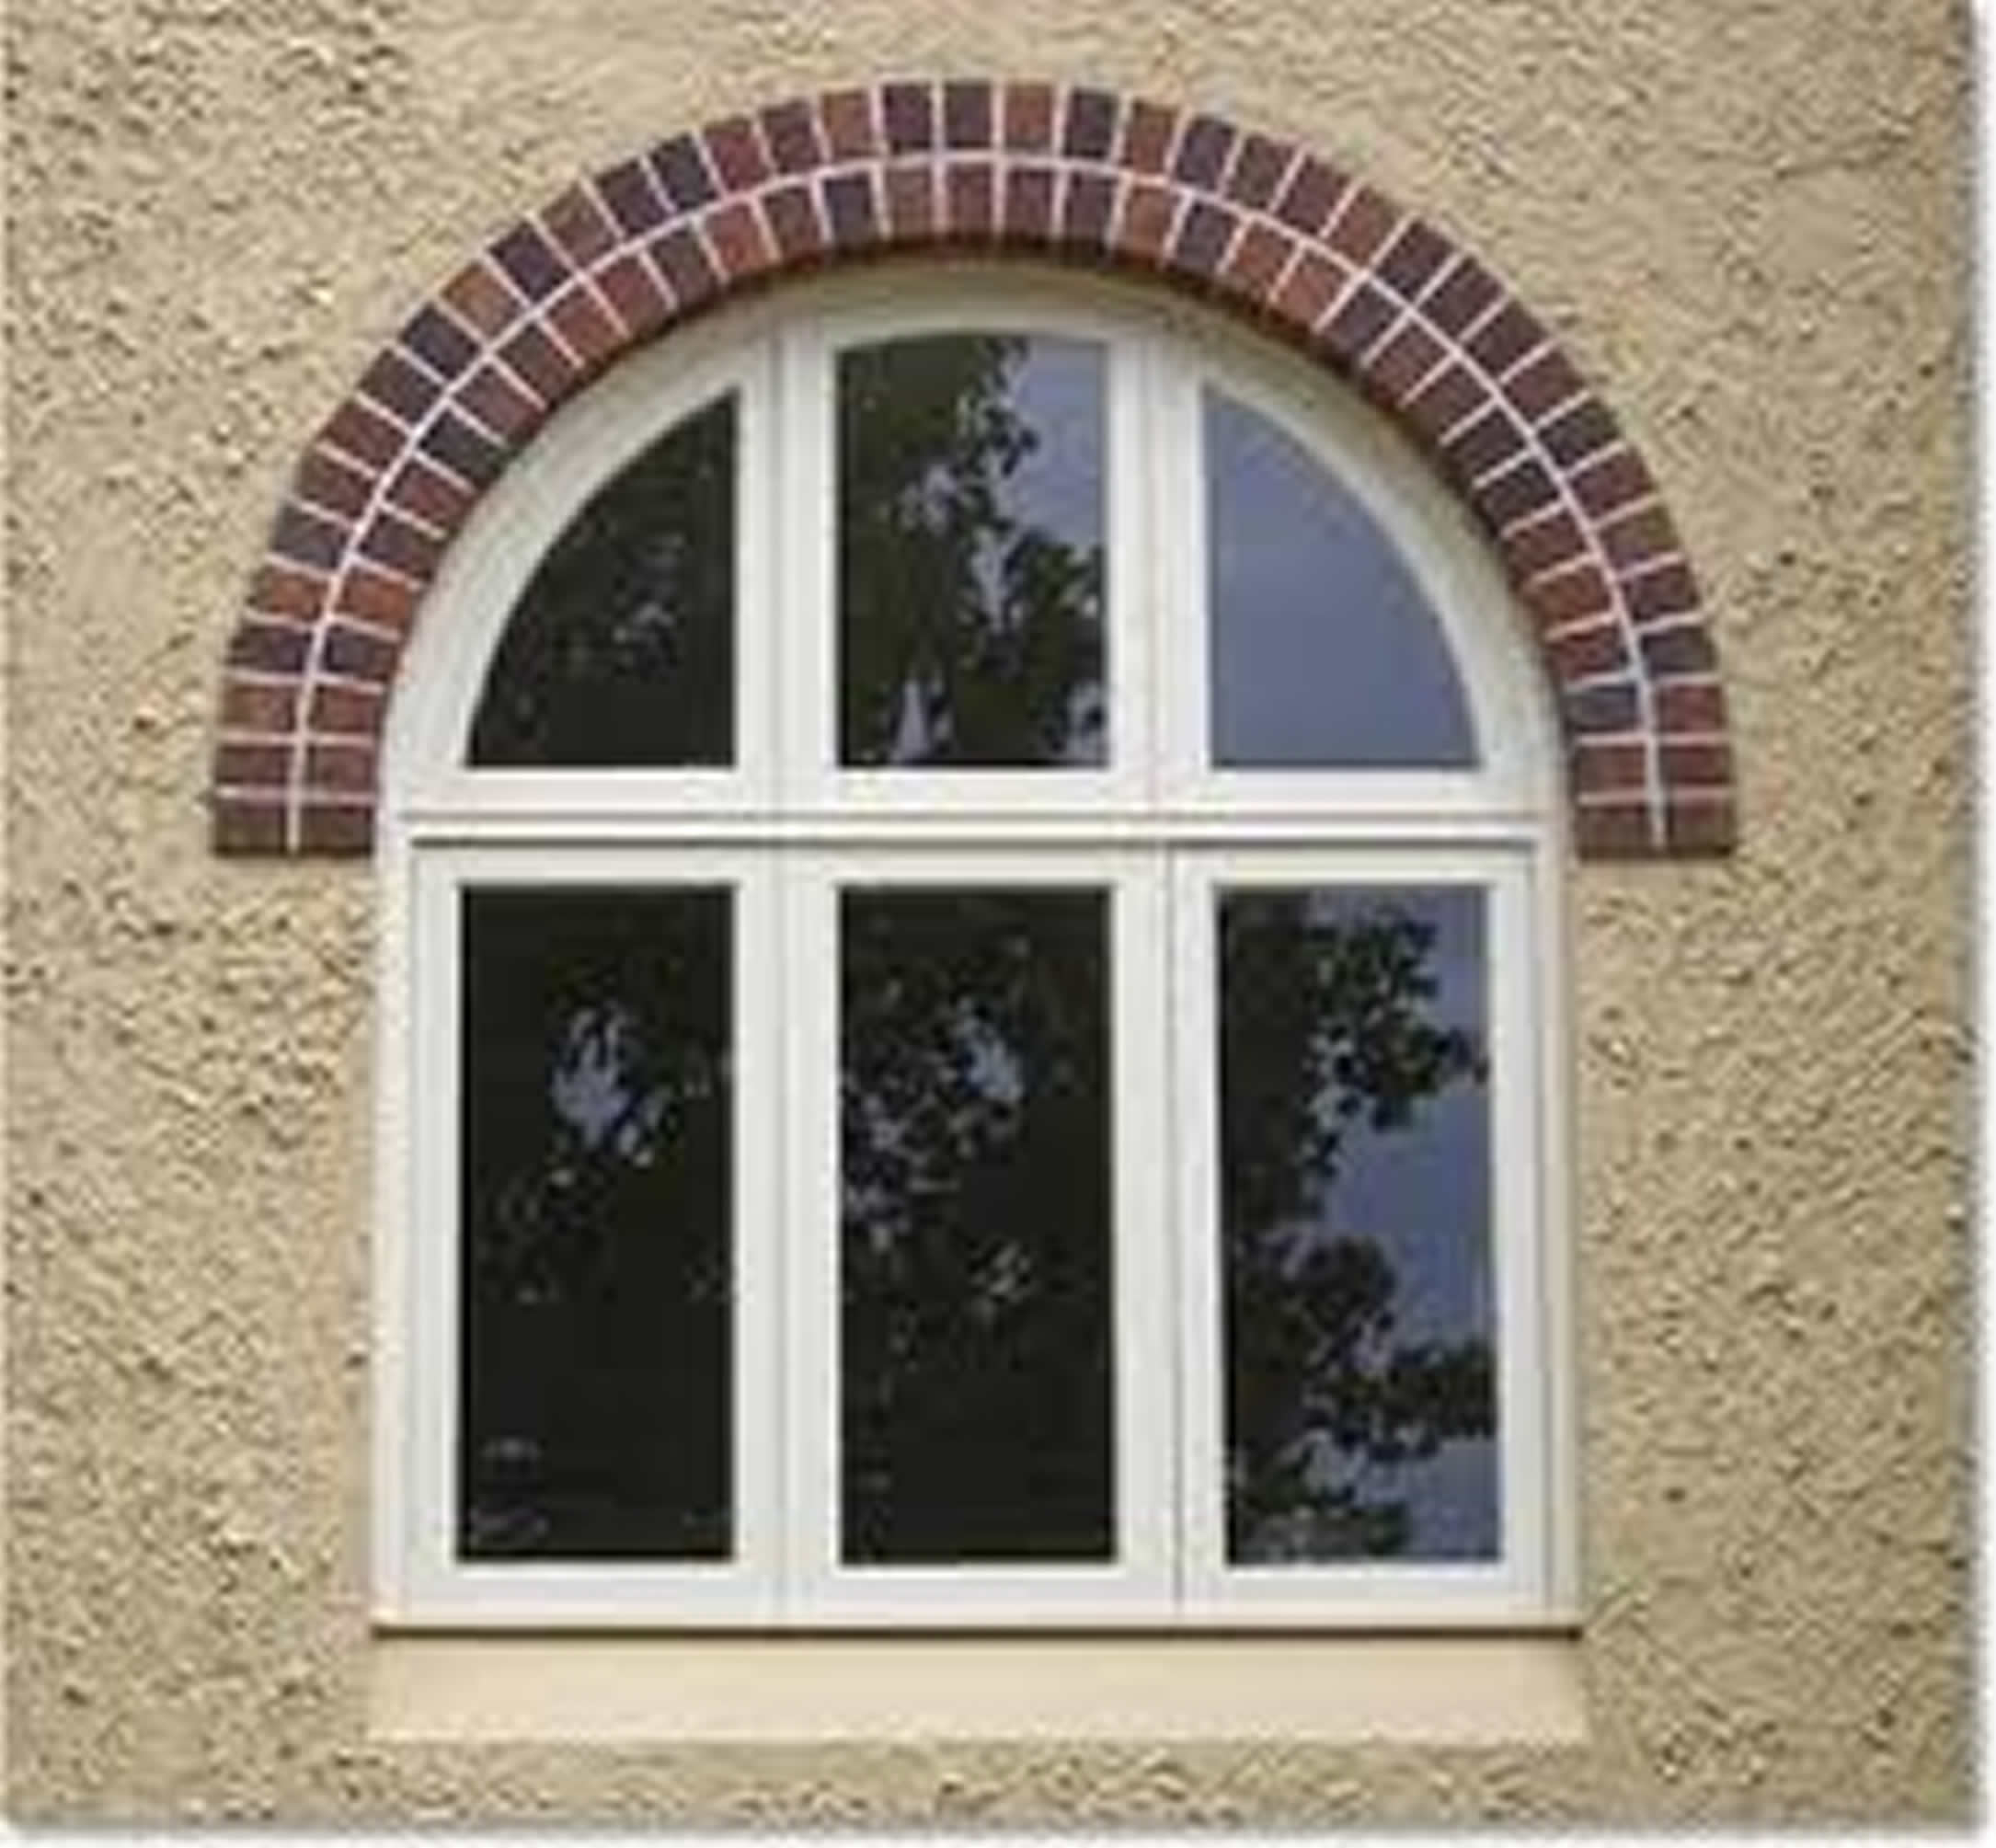 http://clipgoo.com/daut/as/f/b/beautiful-brick-top-arched-windows-frame-with-white-painted-and-6-excerpt-window_apartment-window-frame-detail_apartment_minimalist-apartment-design-district-apartments-dallas-your-own-micro-loft-smal.jpg